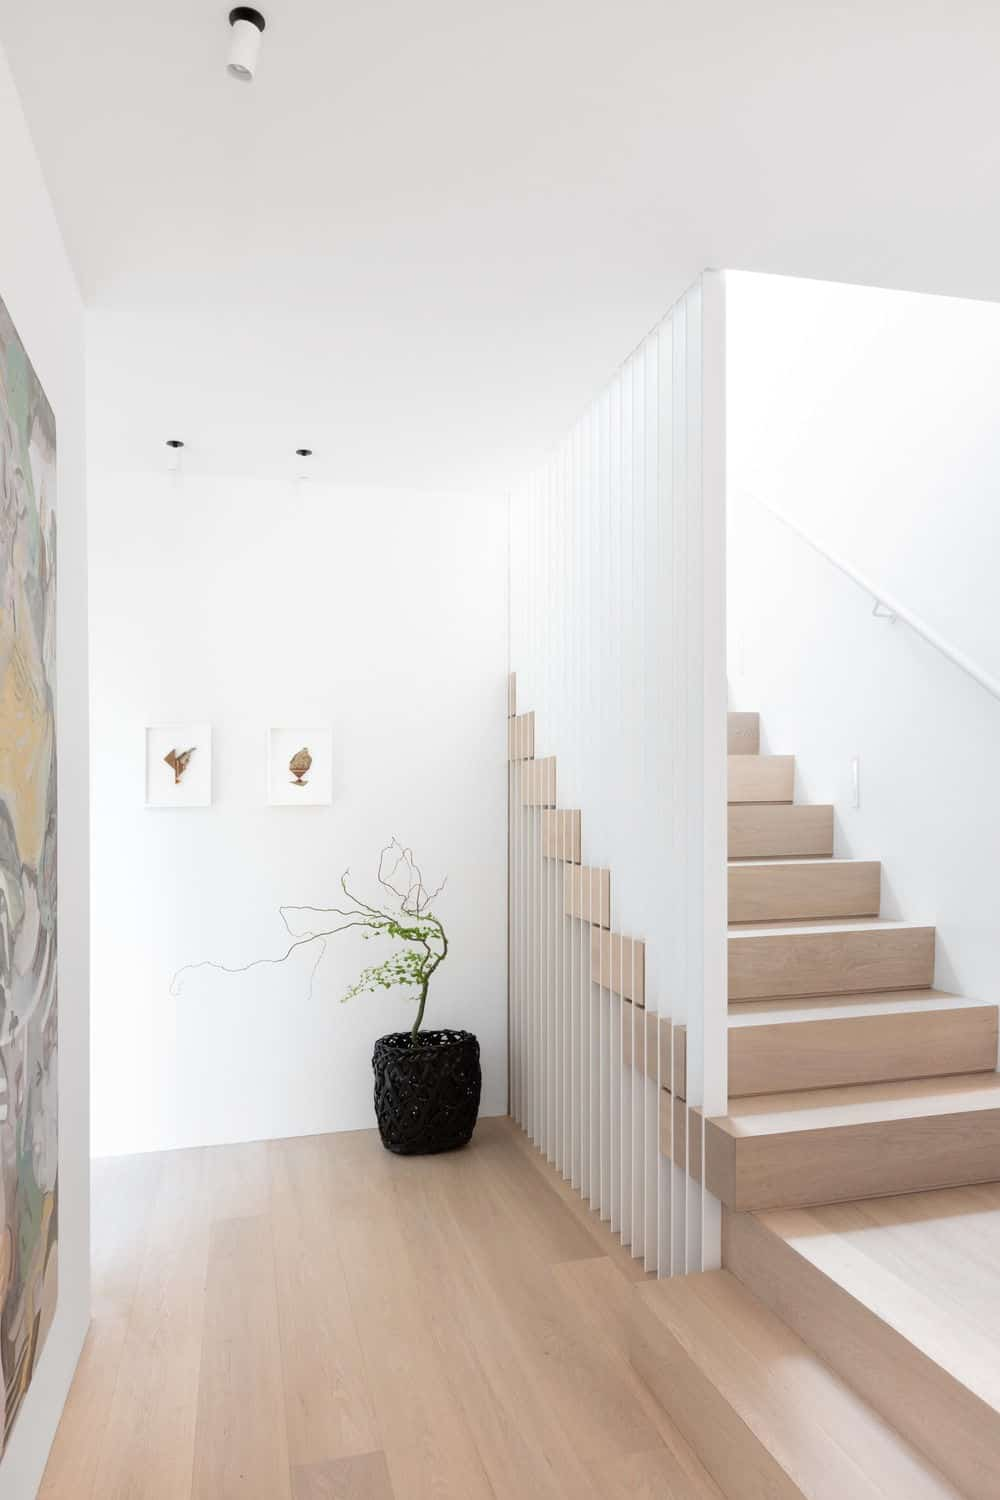 Hallway leading to other indoor amenities and a staircase leading to the home's second floor. Photo credit: Ema Peter